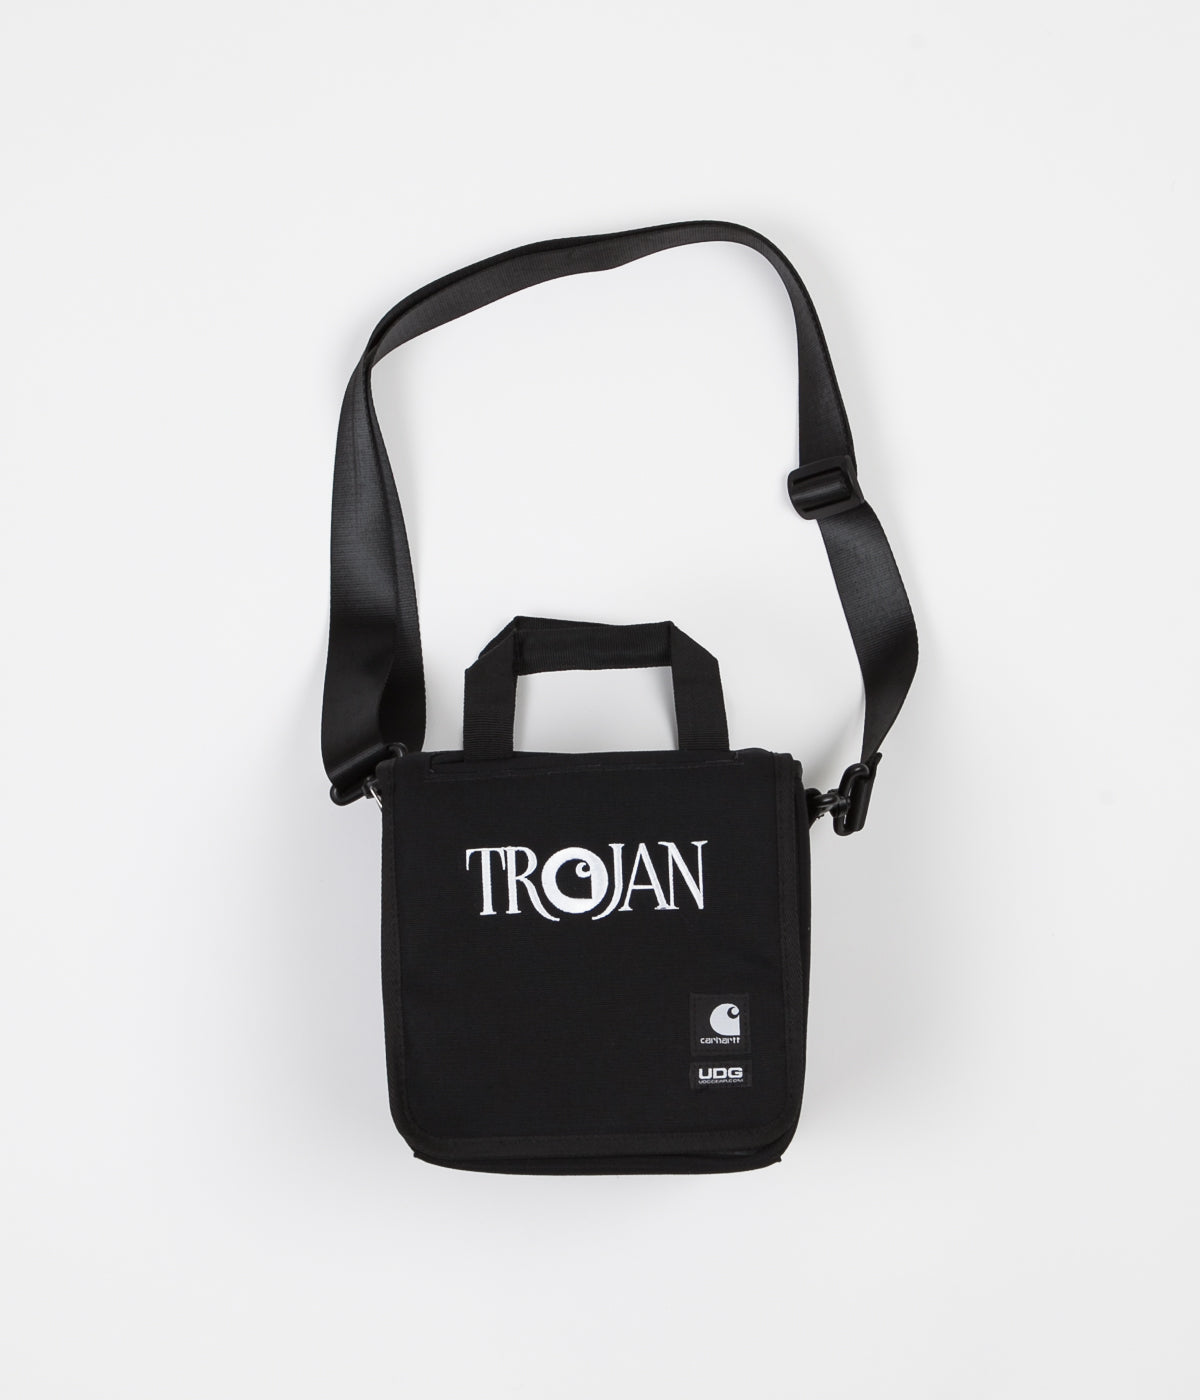 Carhartt x Trojan Records 7 Record Bag - Black